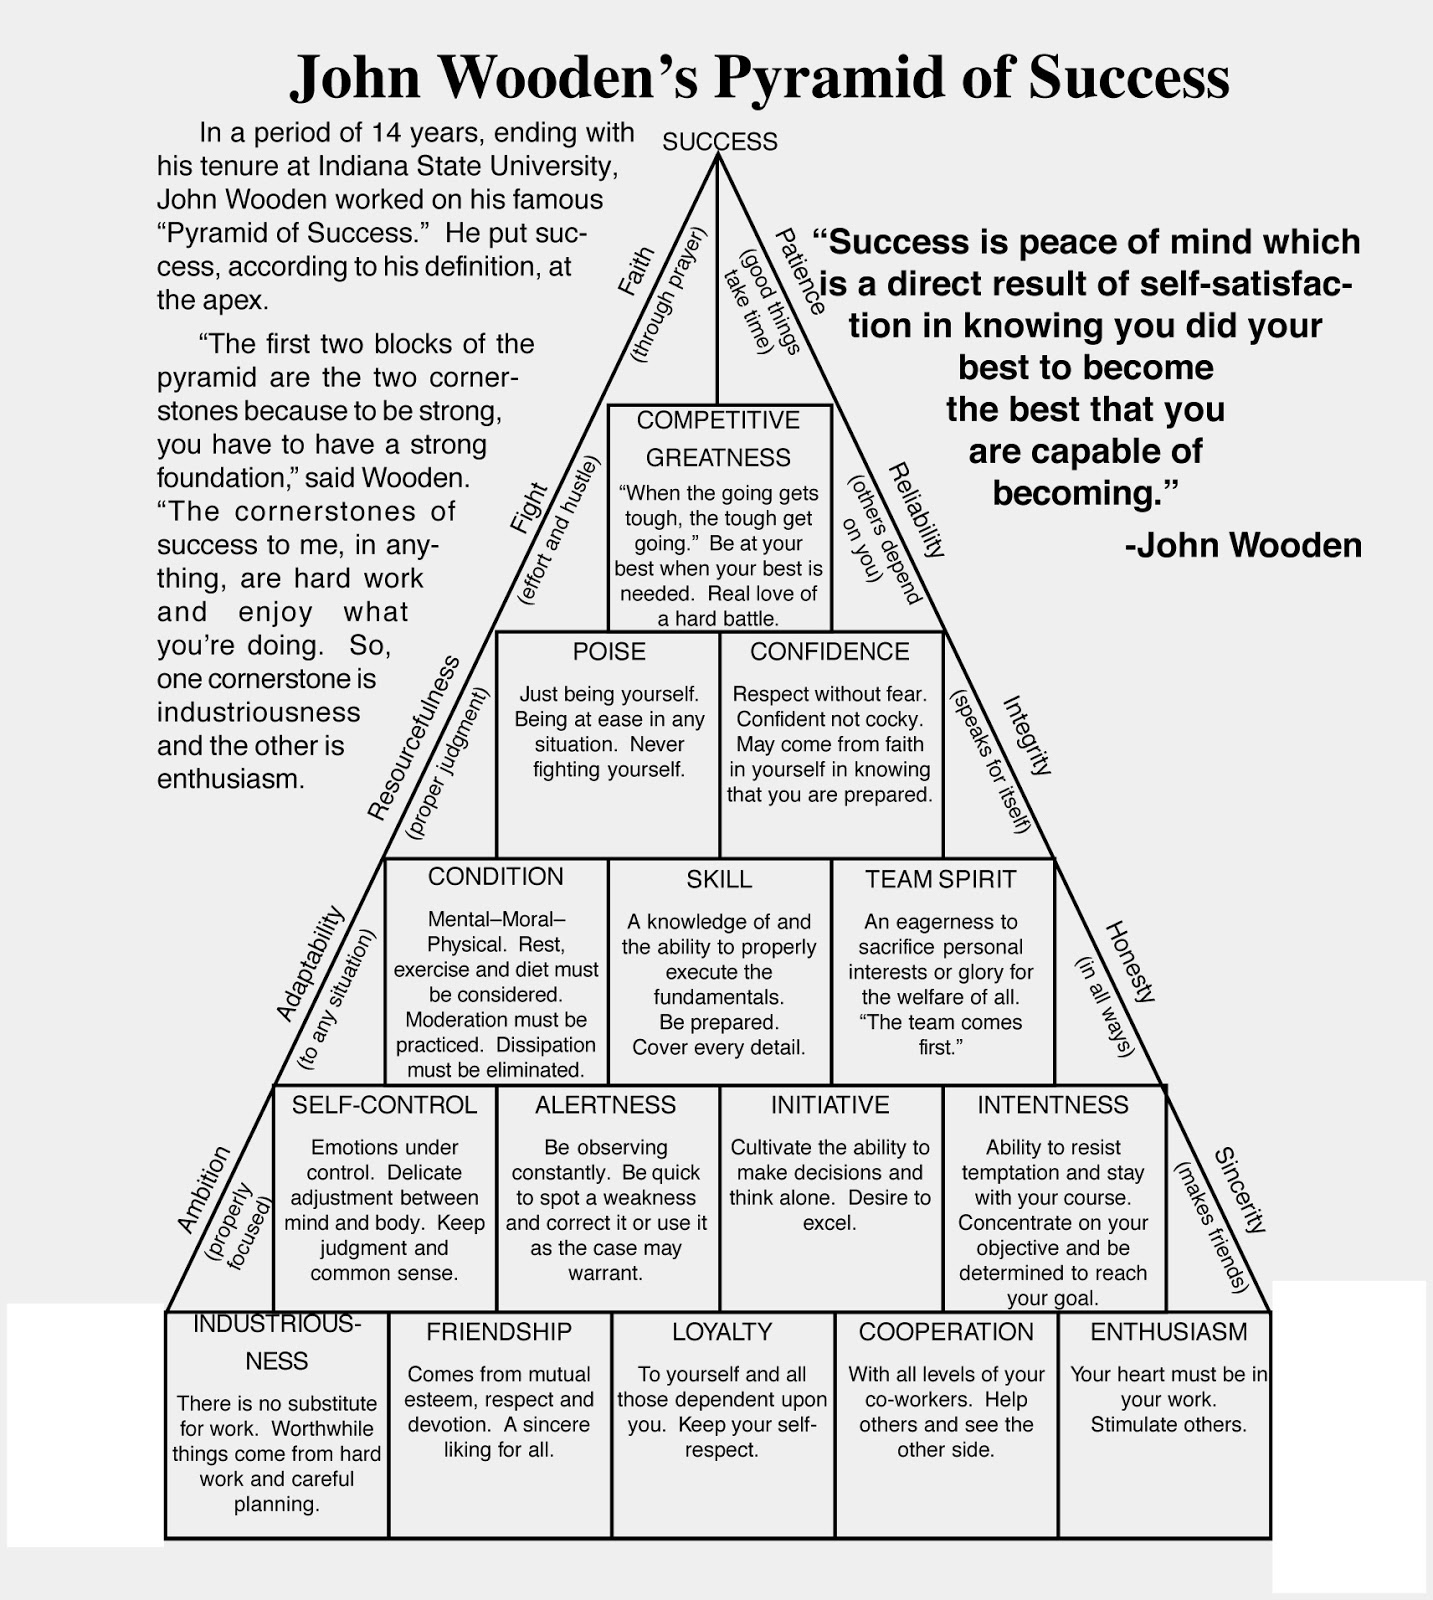 john wooden pyramid of success article